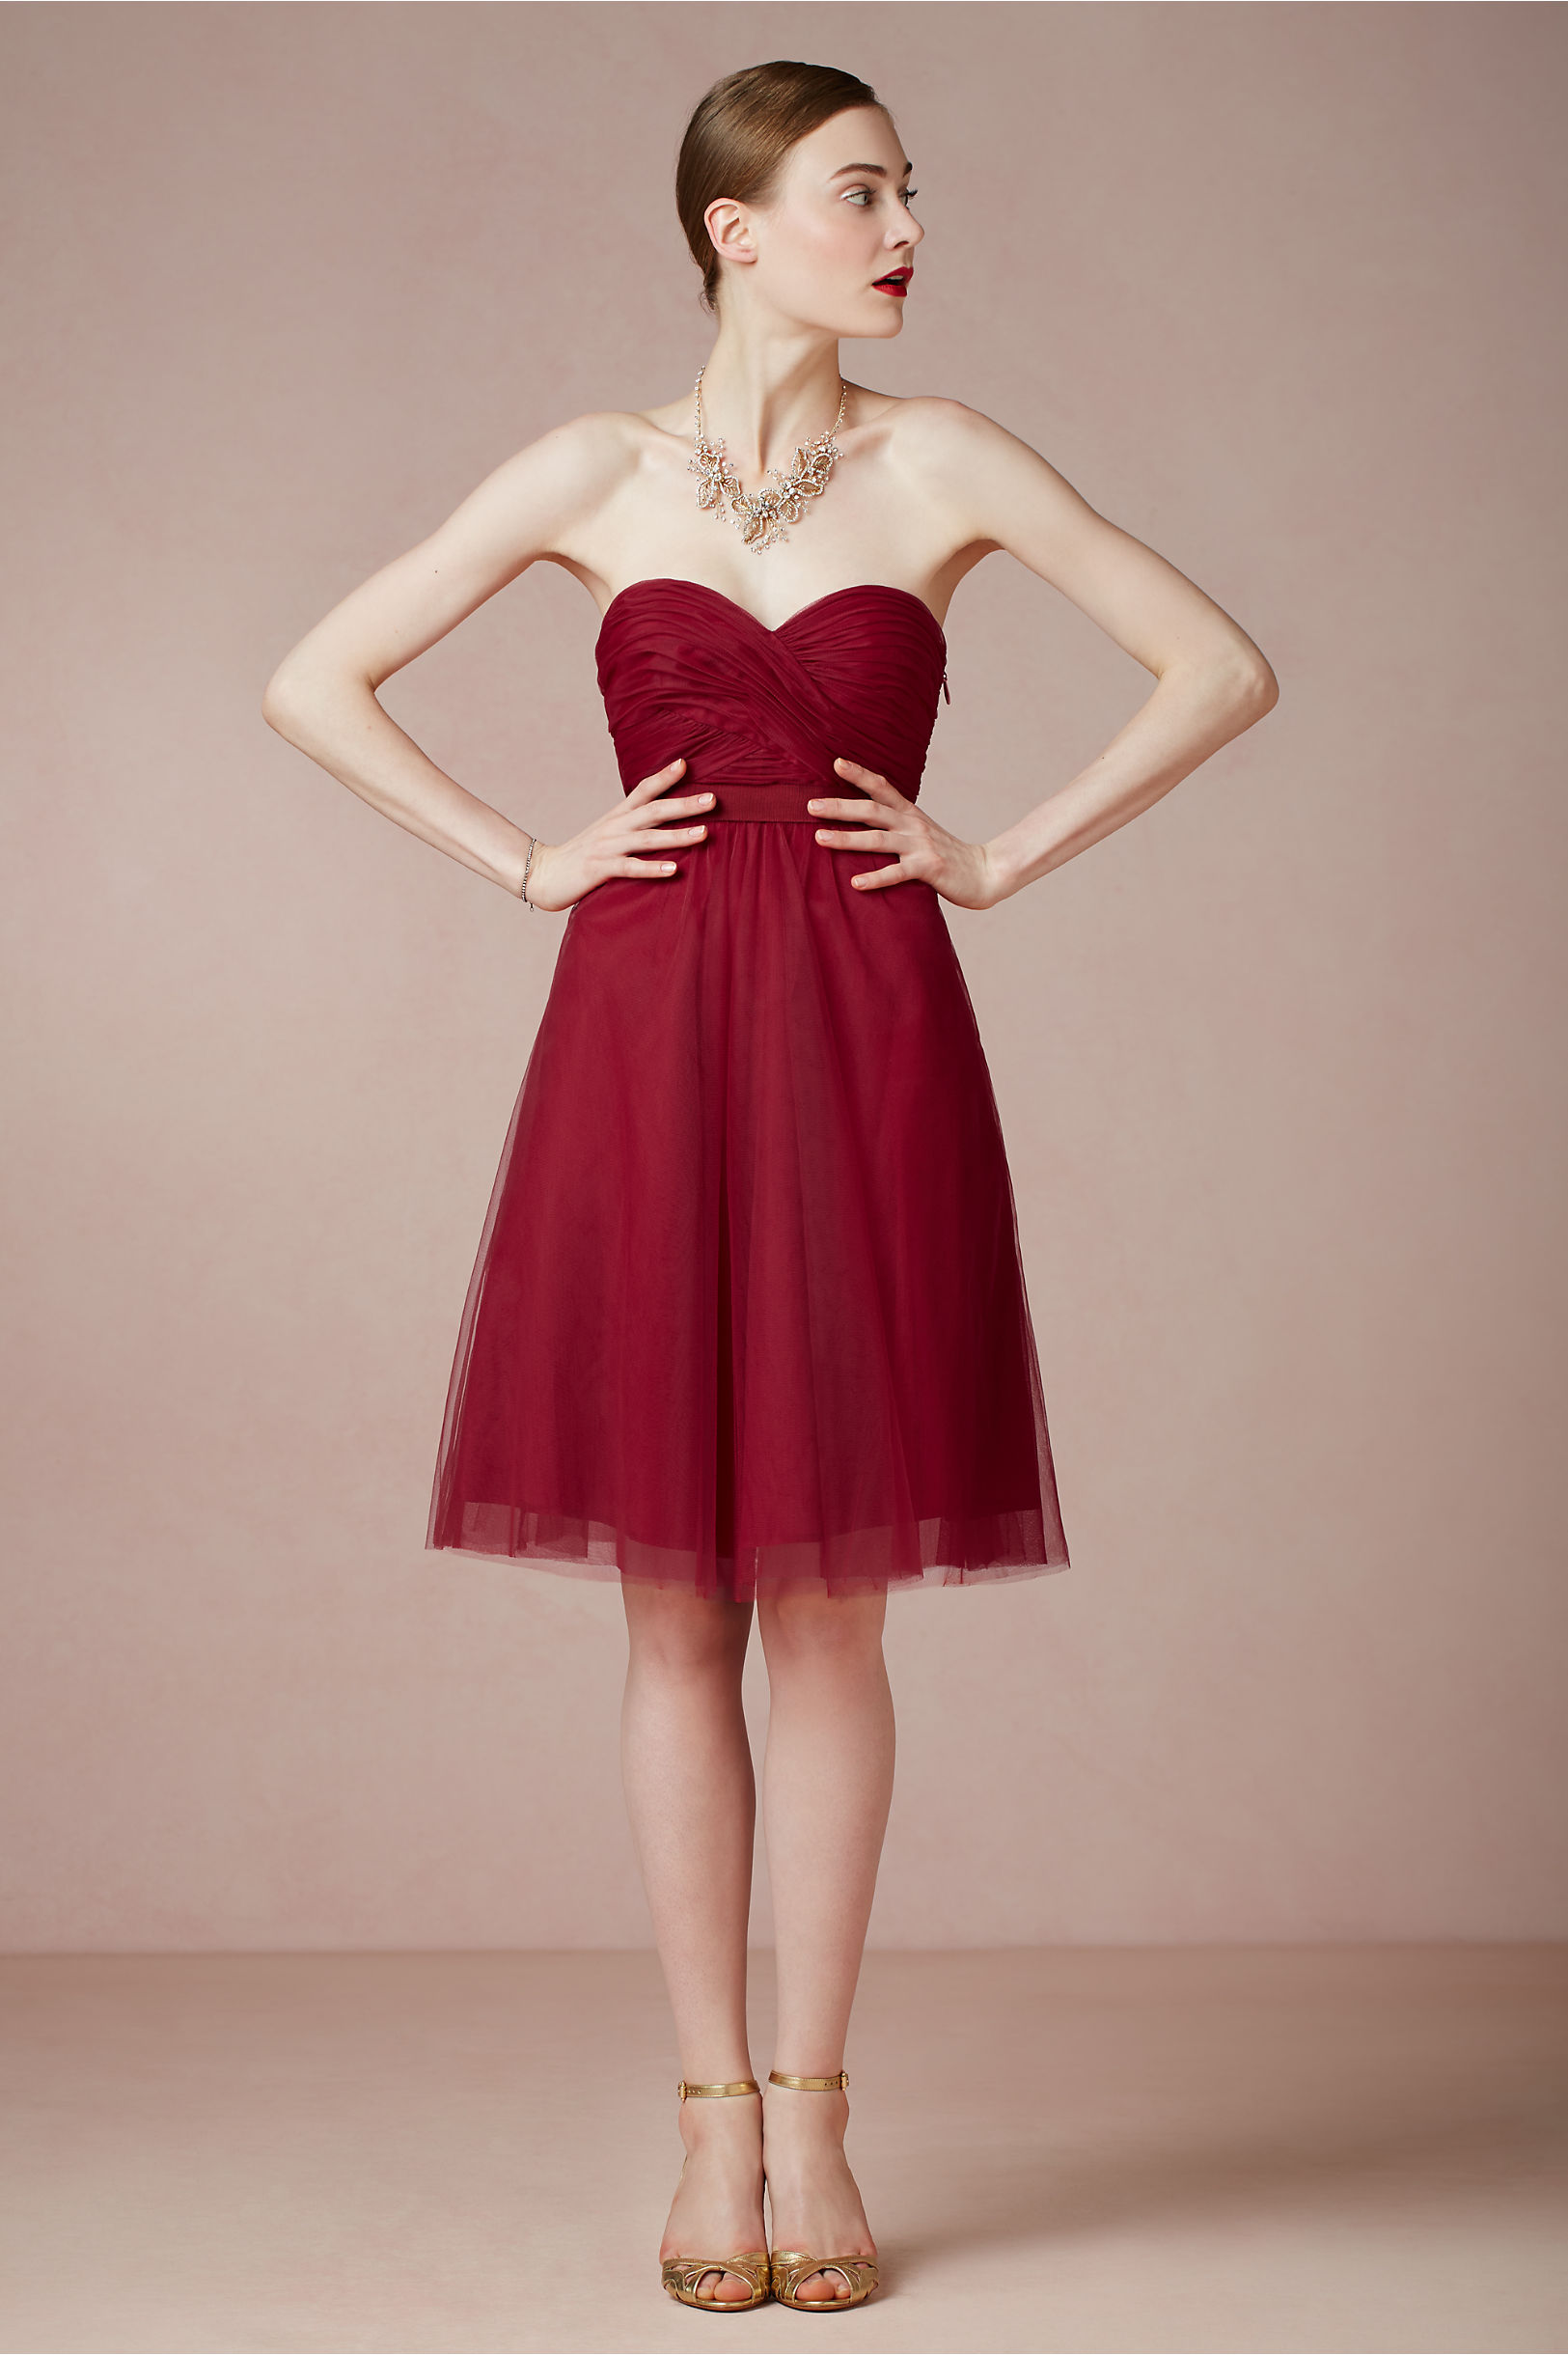 Choreography dress in bridal party bhldn crimson choreography dress bhldn ombrellifo Images